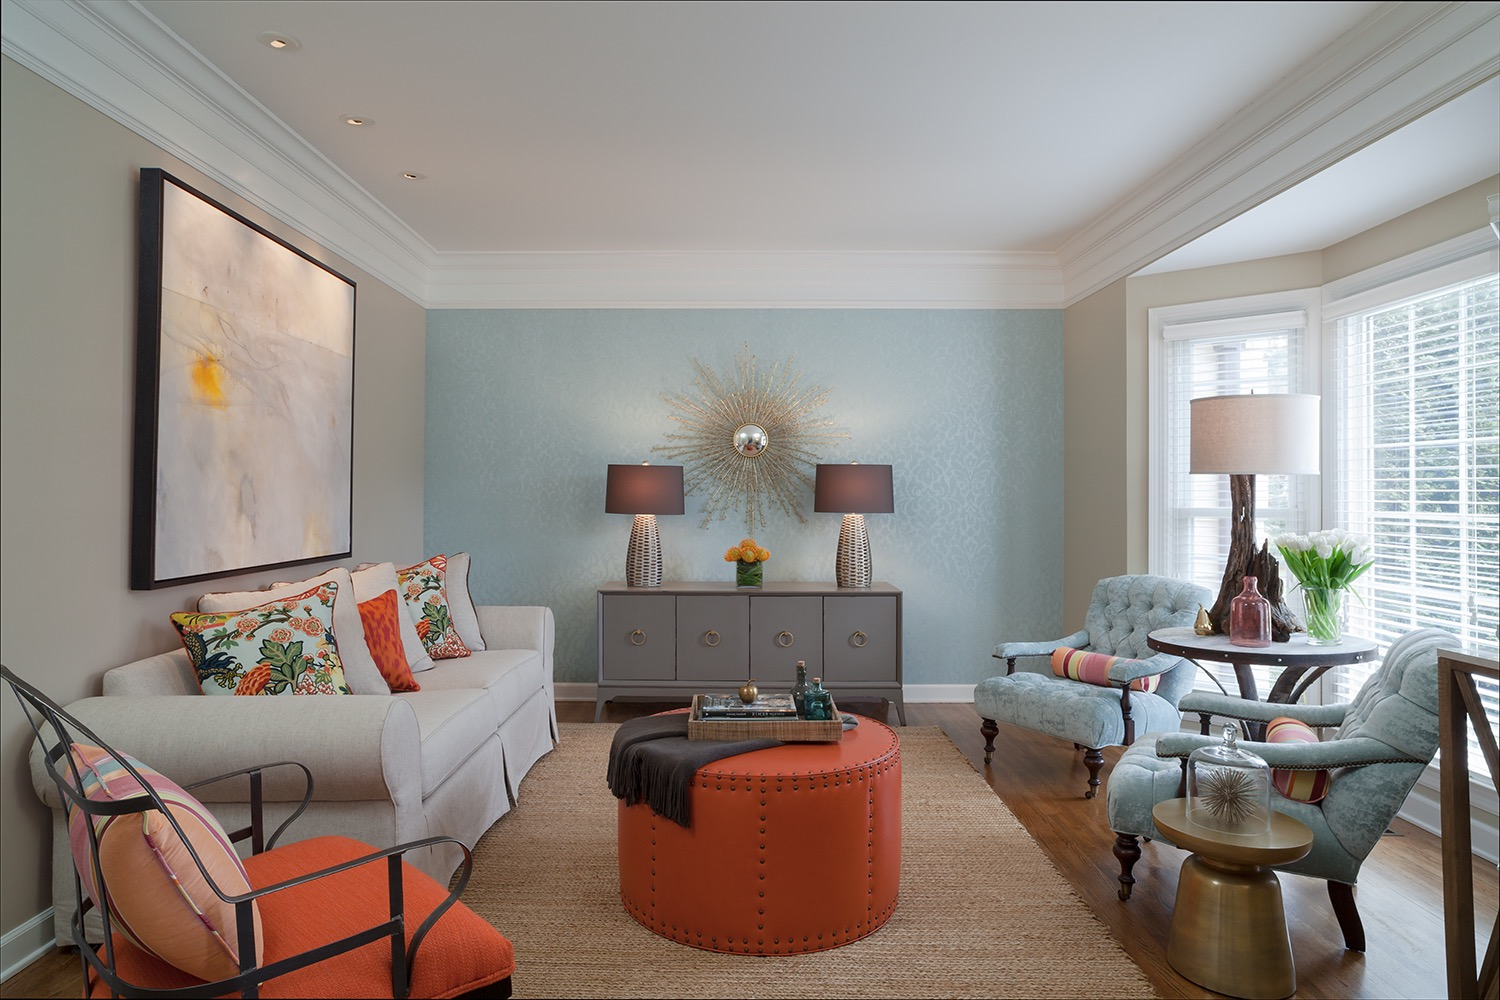 Energetic Transitional Living Room Decor With Blue Accent Wall (Image 7 of 30)